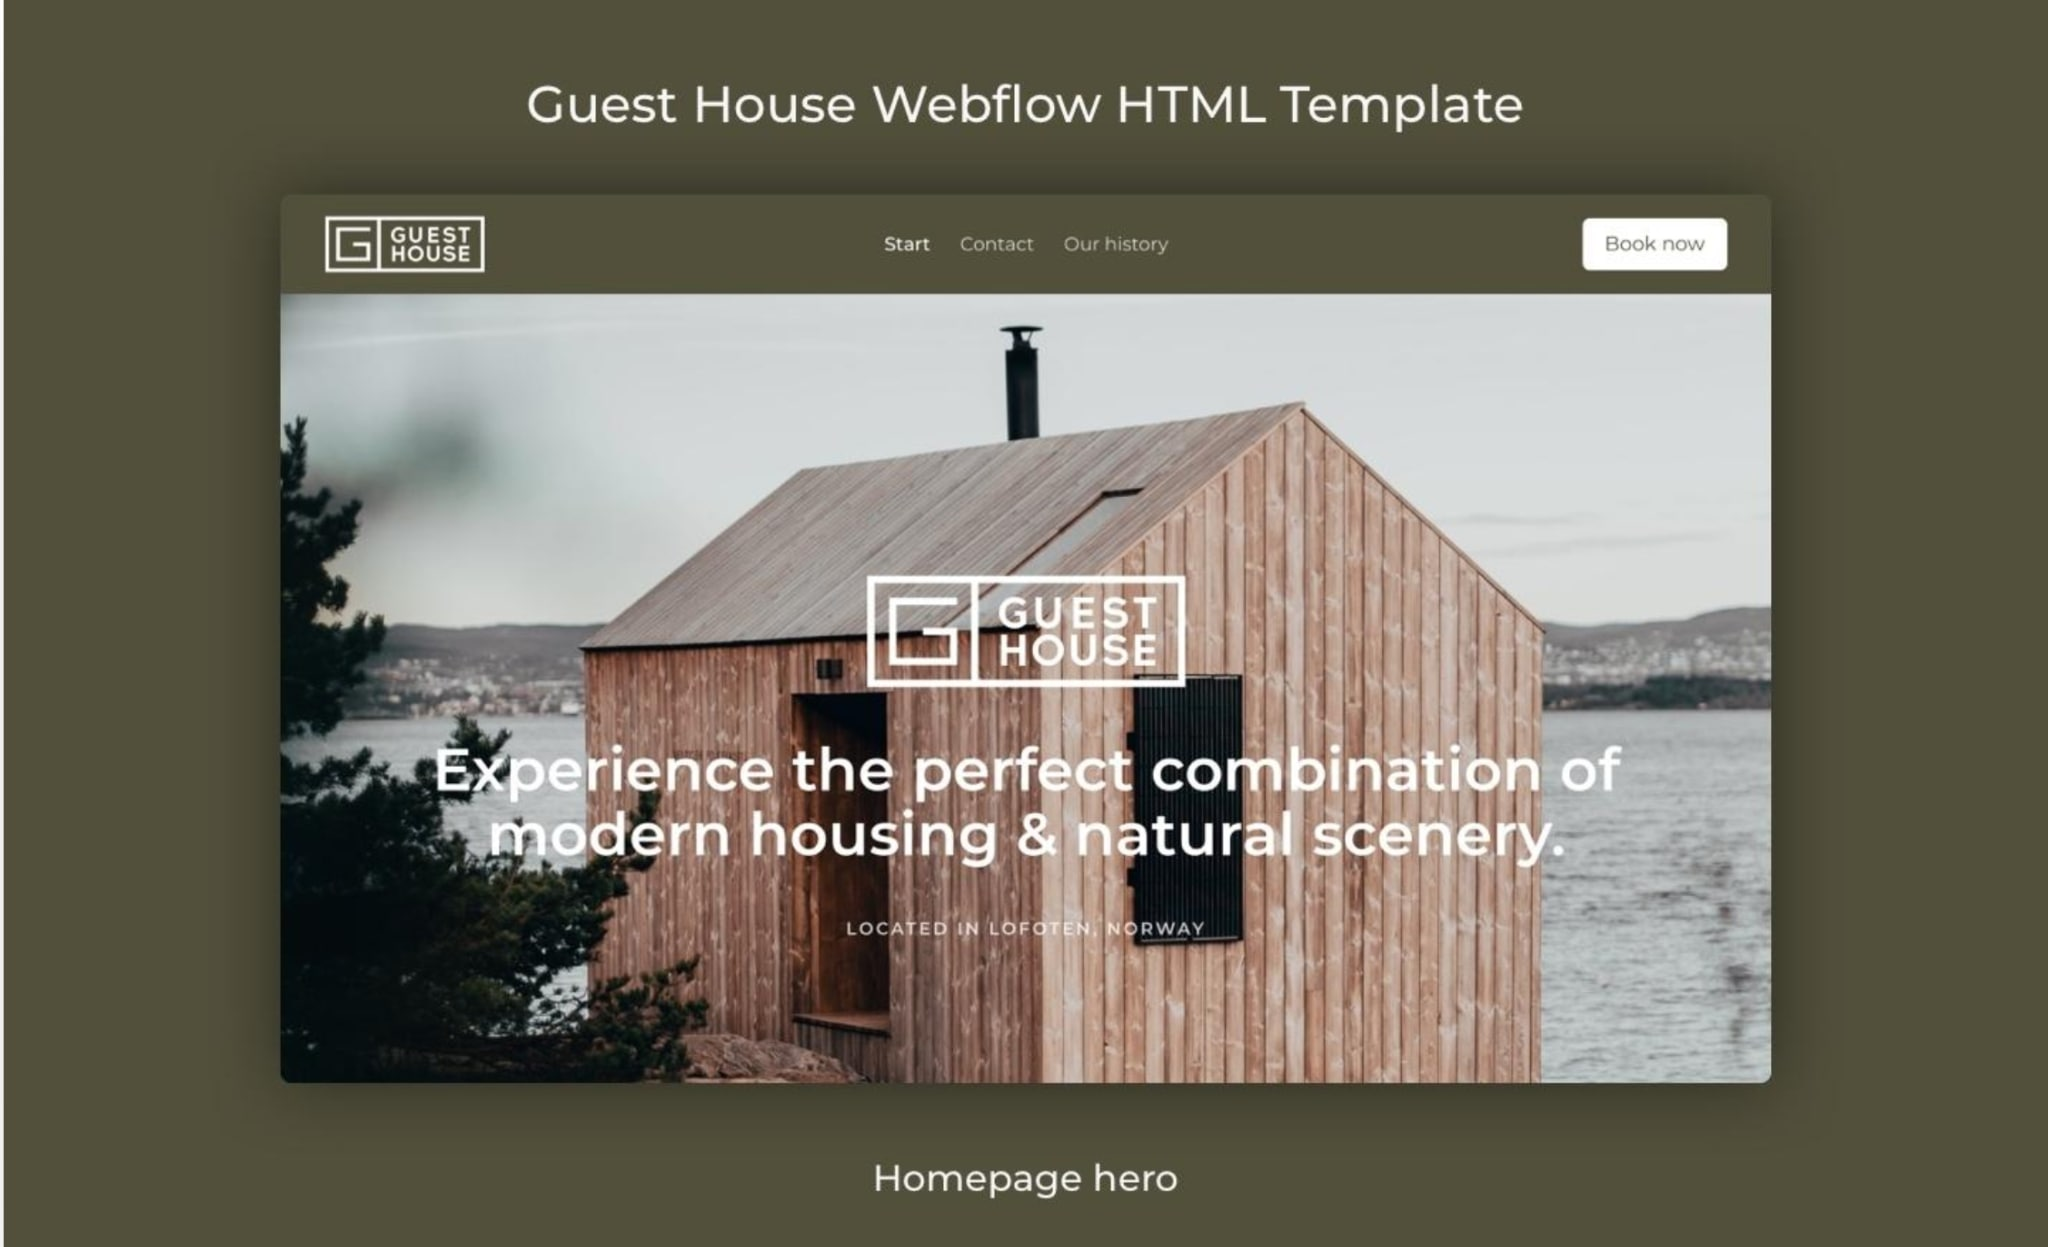 An image of the Guest House Webflow template.